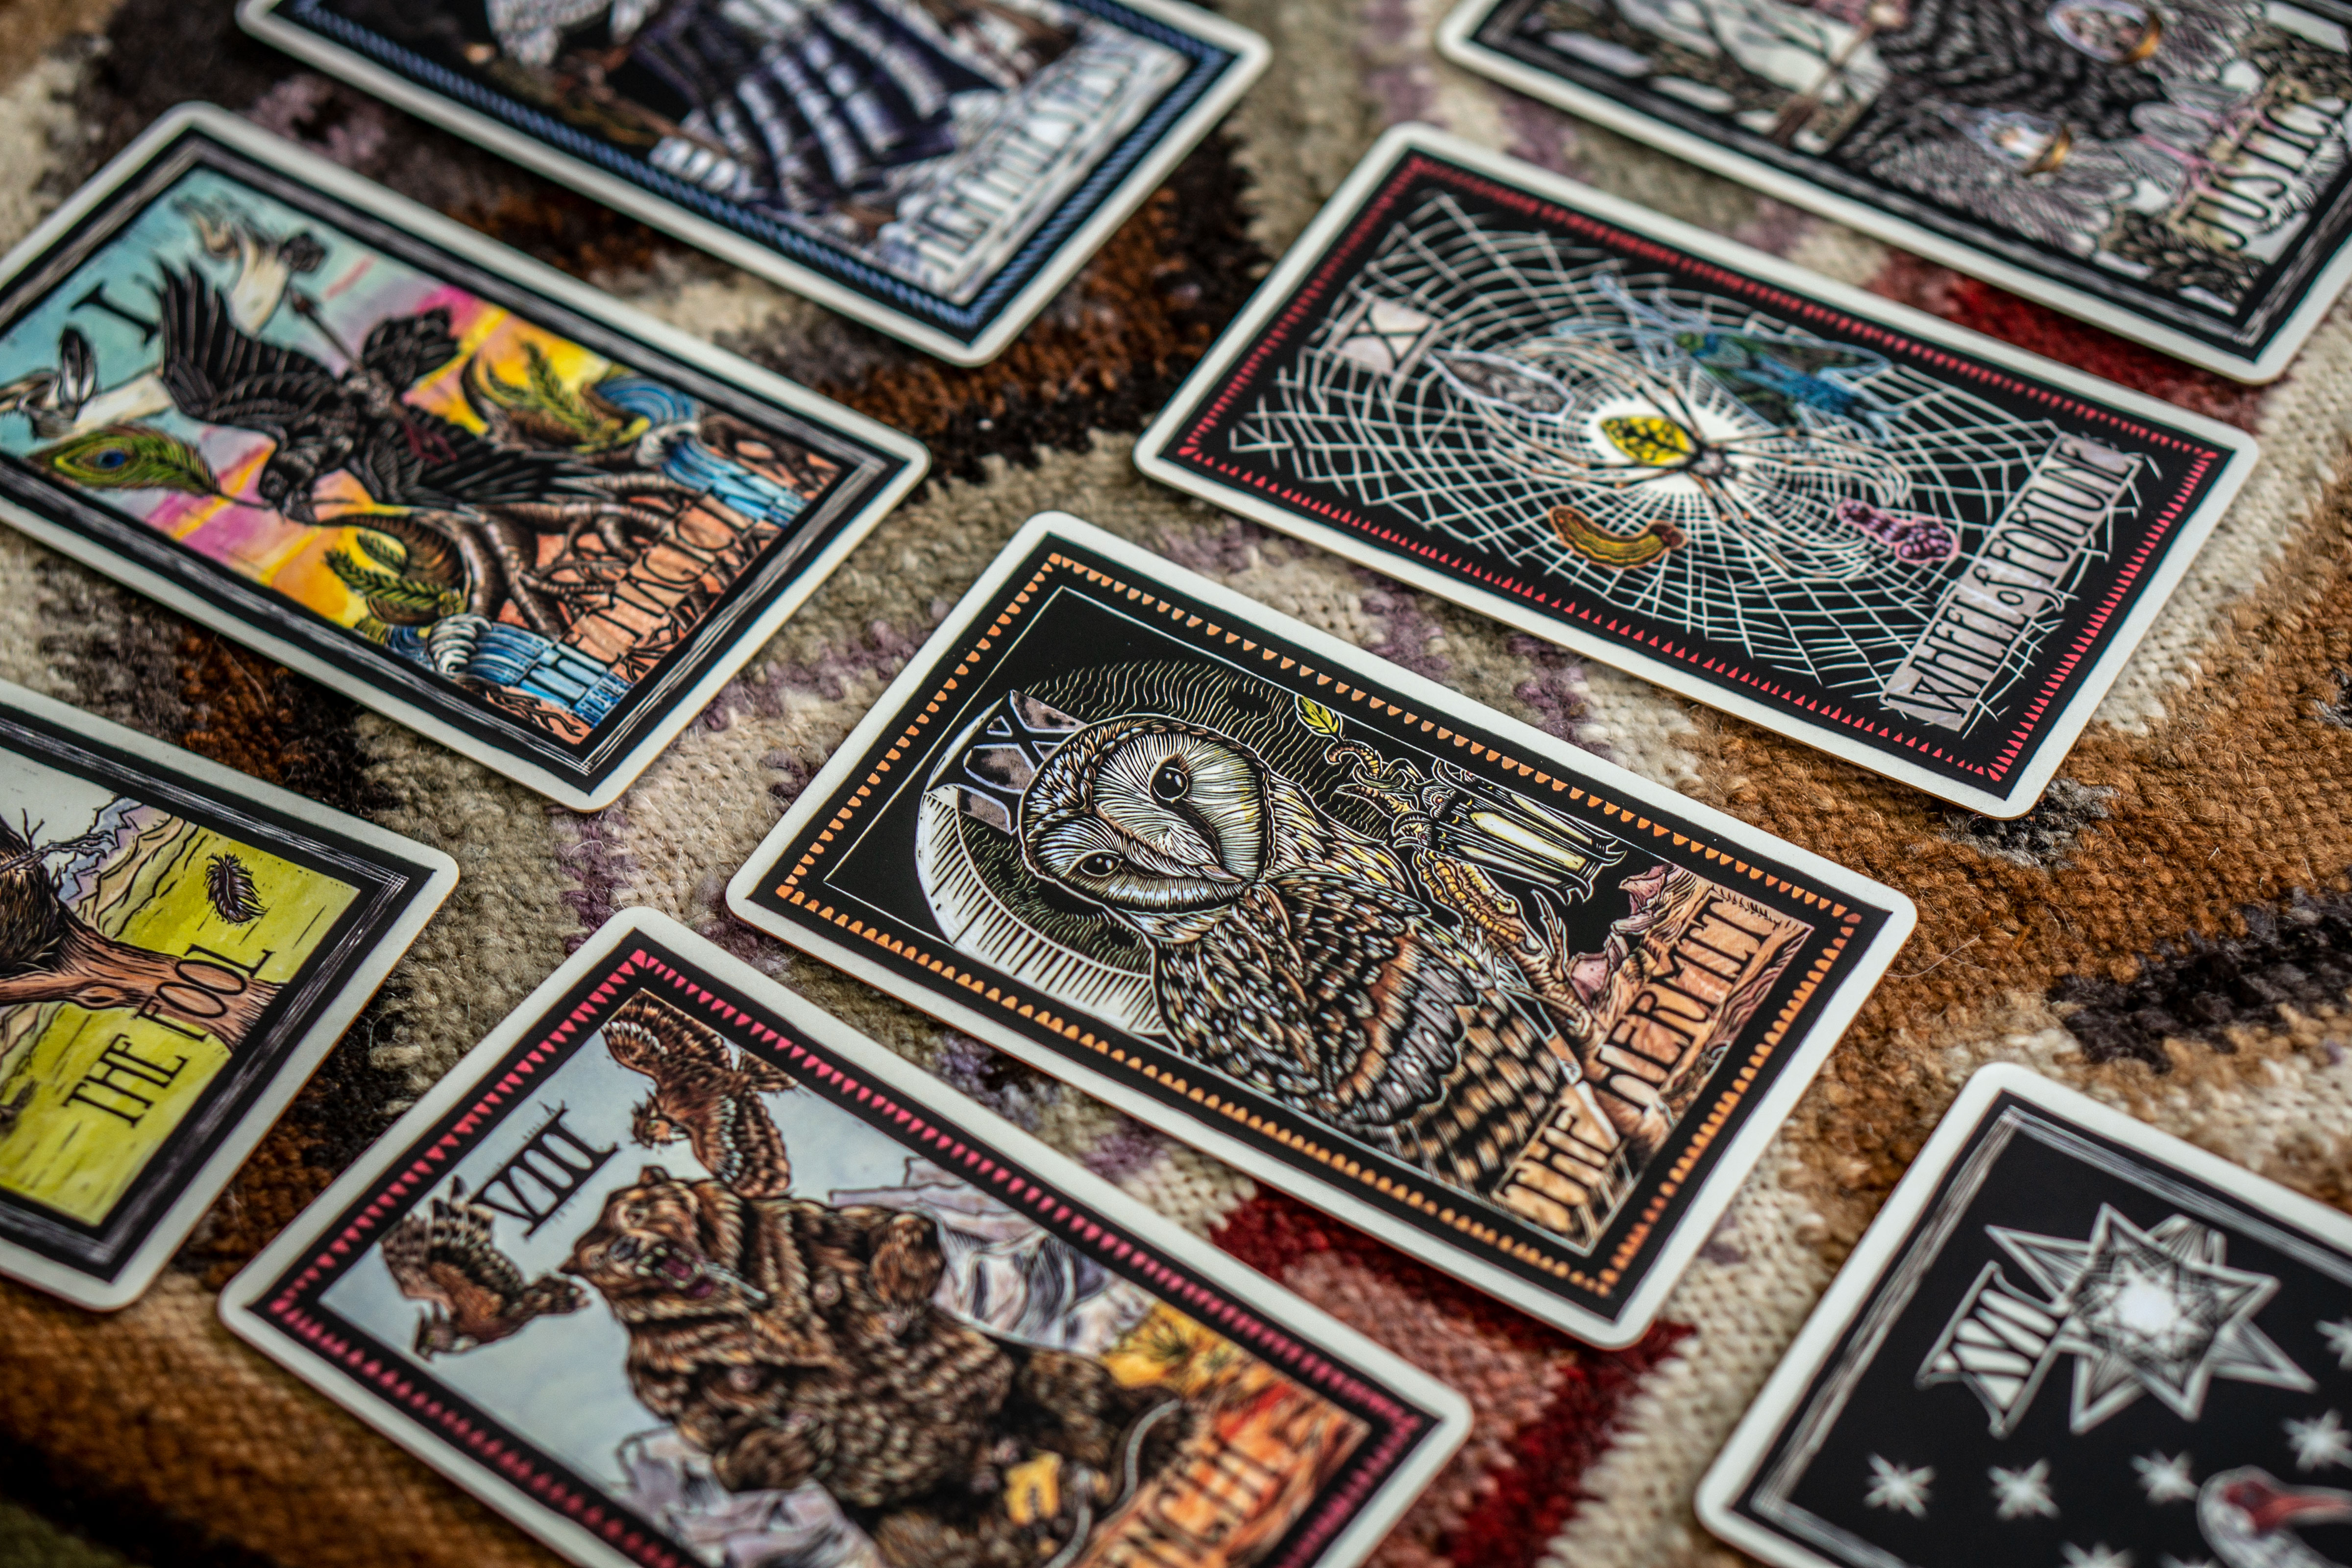 Emi Brady's deck of Tarot Cards features 78 hand-colored linocuts.